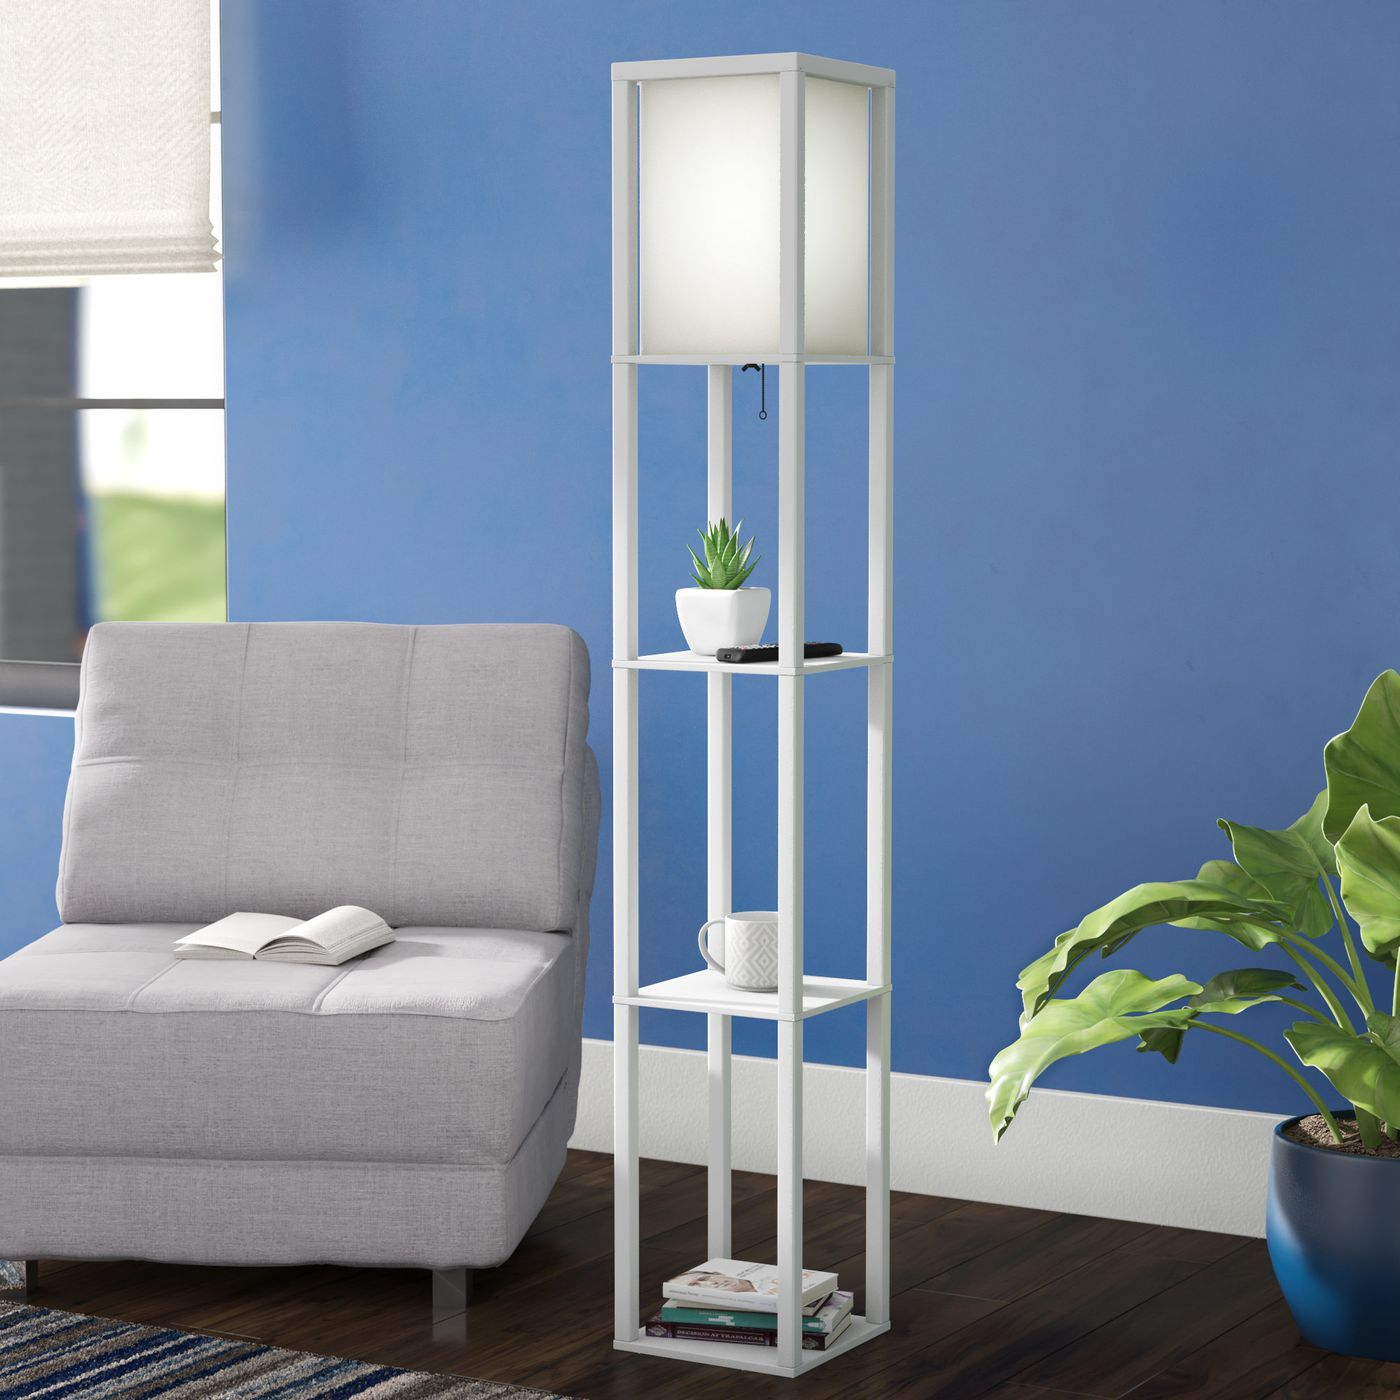 Small space furniture: Best buys for tiny apartments - Curbed